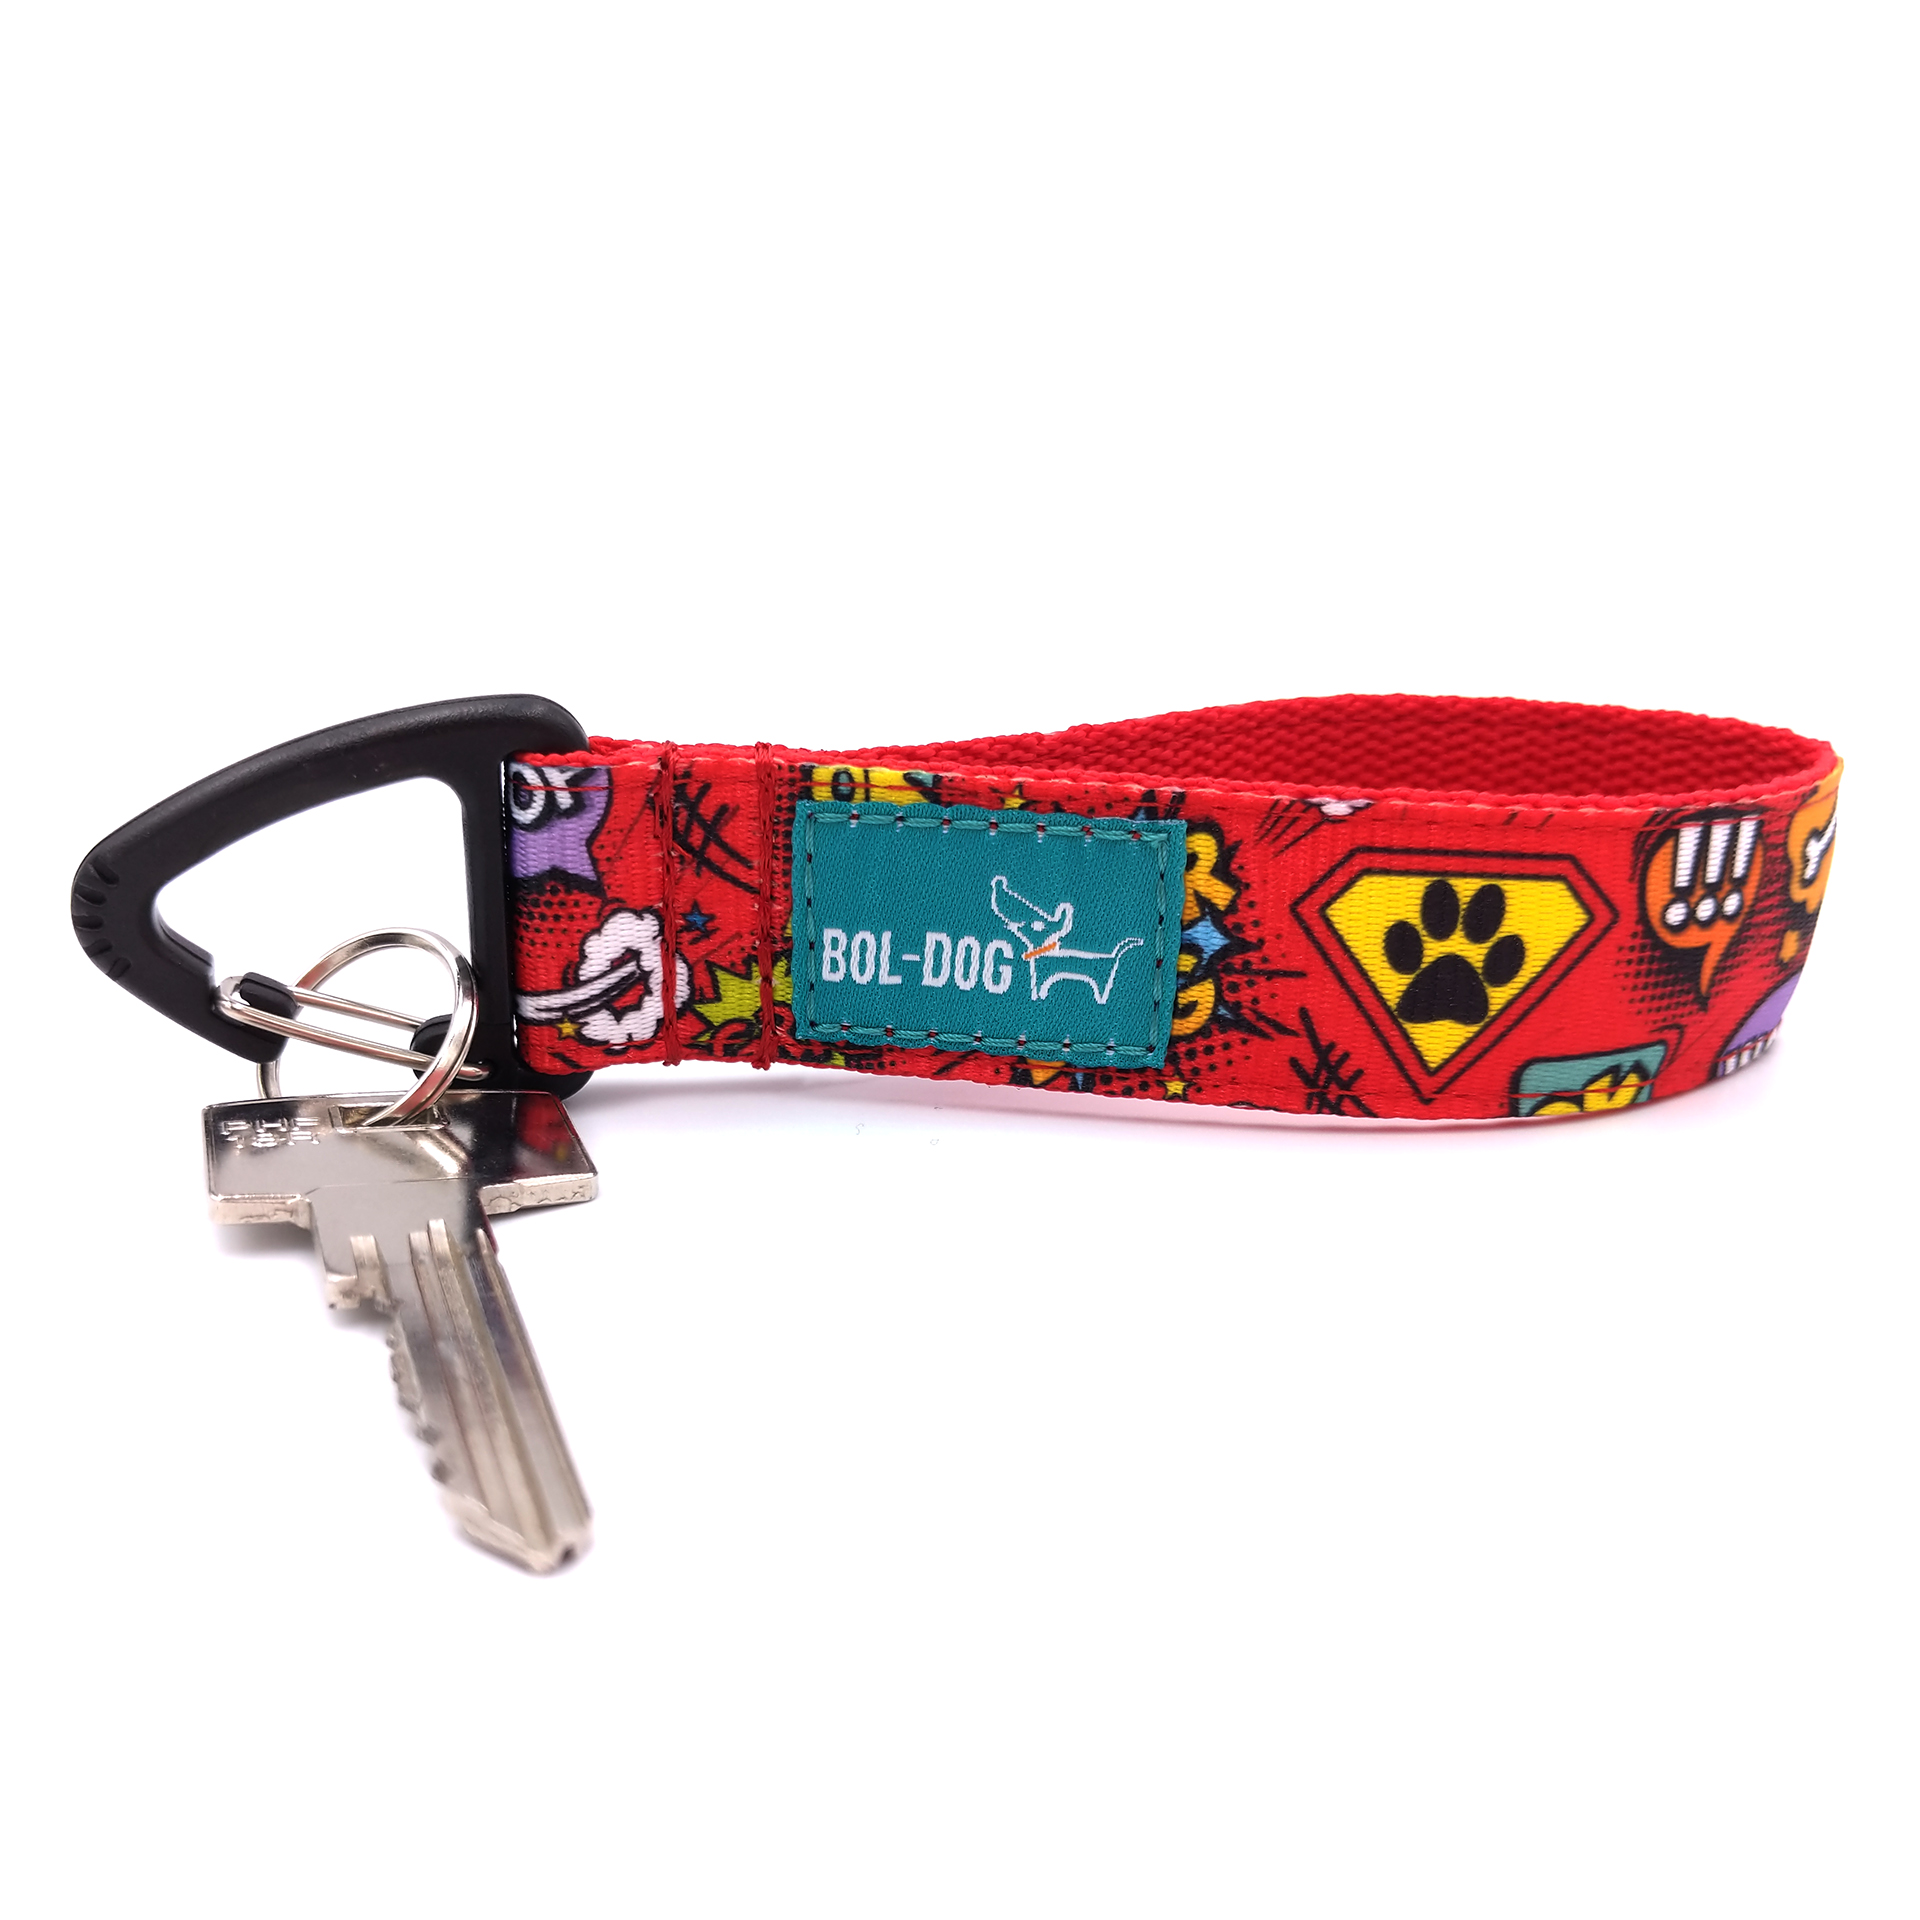 Superdog red key holder